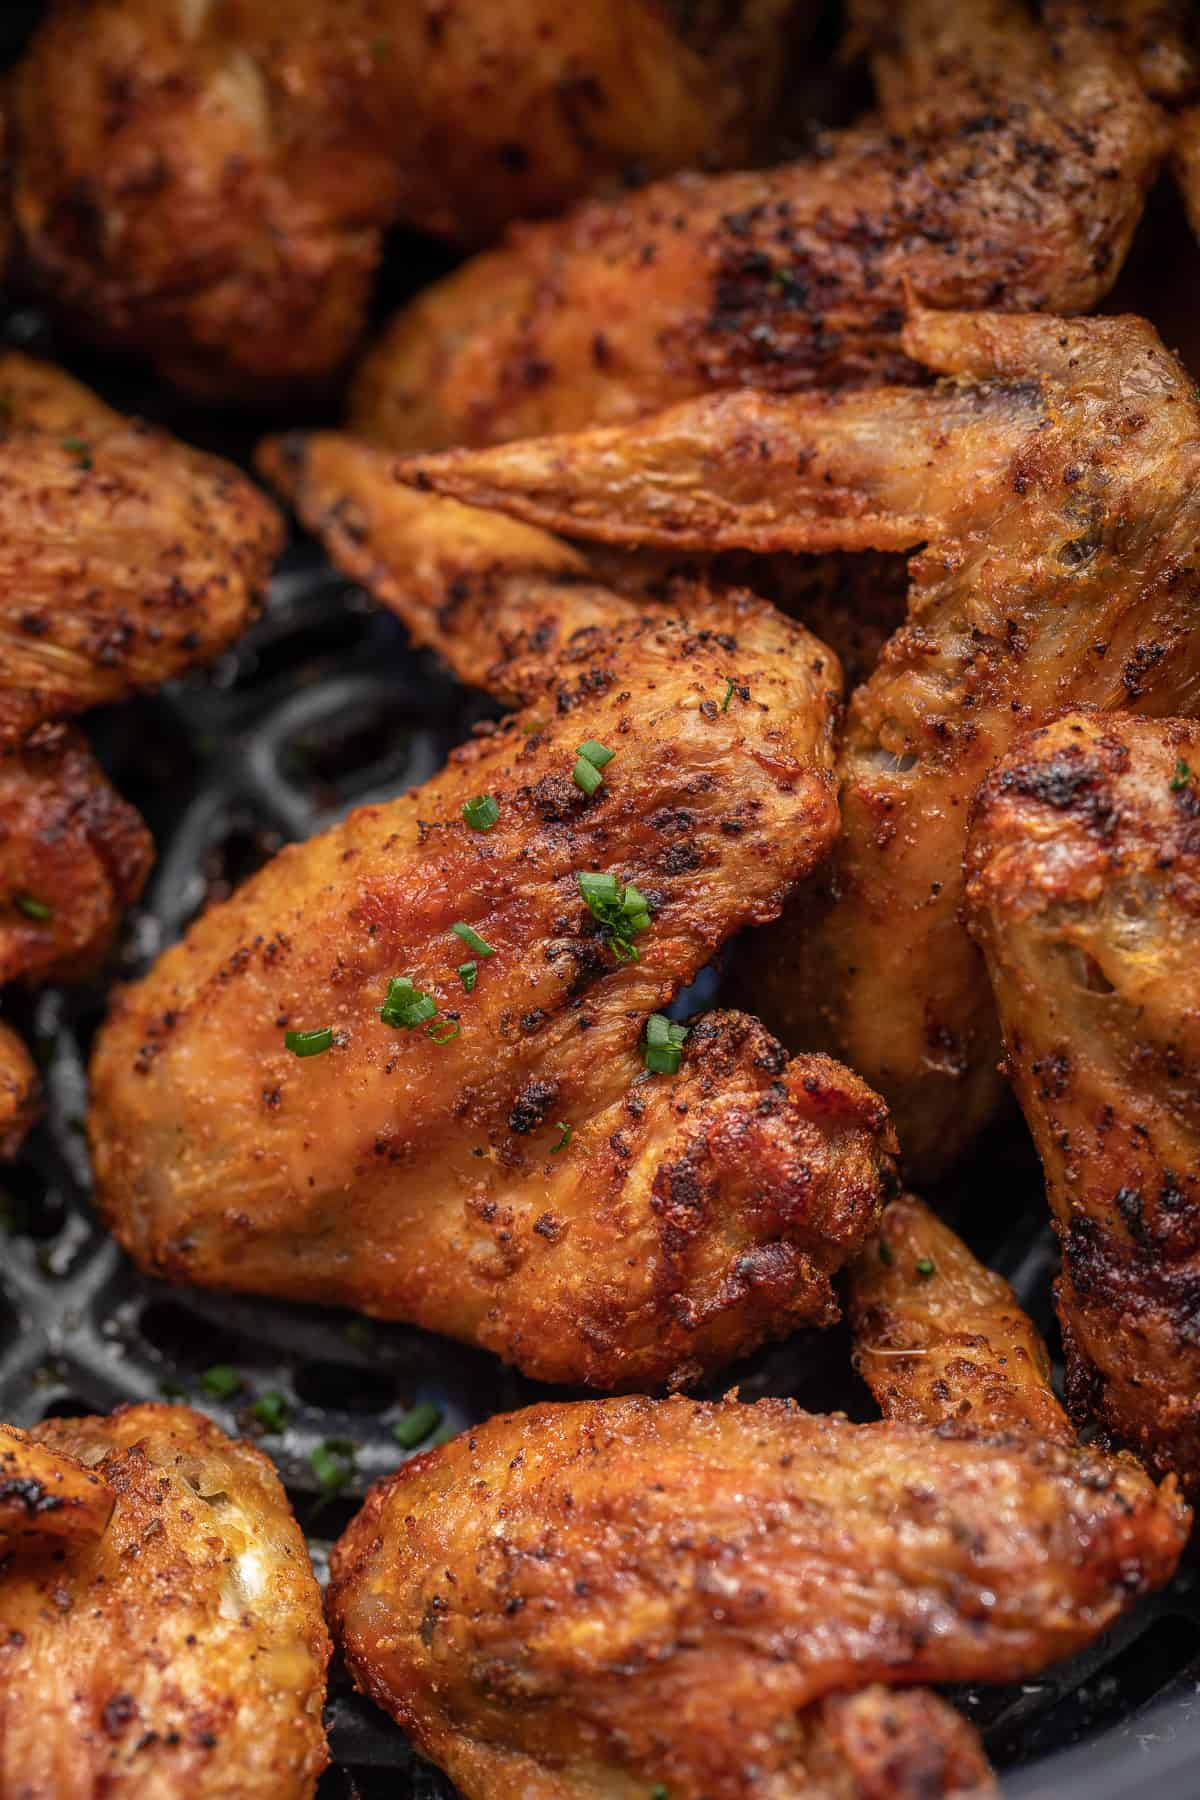 Overhead view of the air fryer chicken wings.